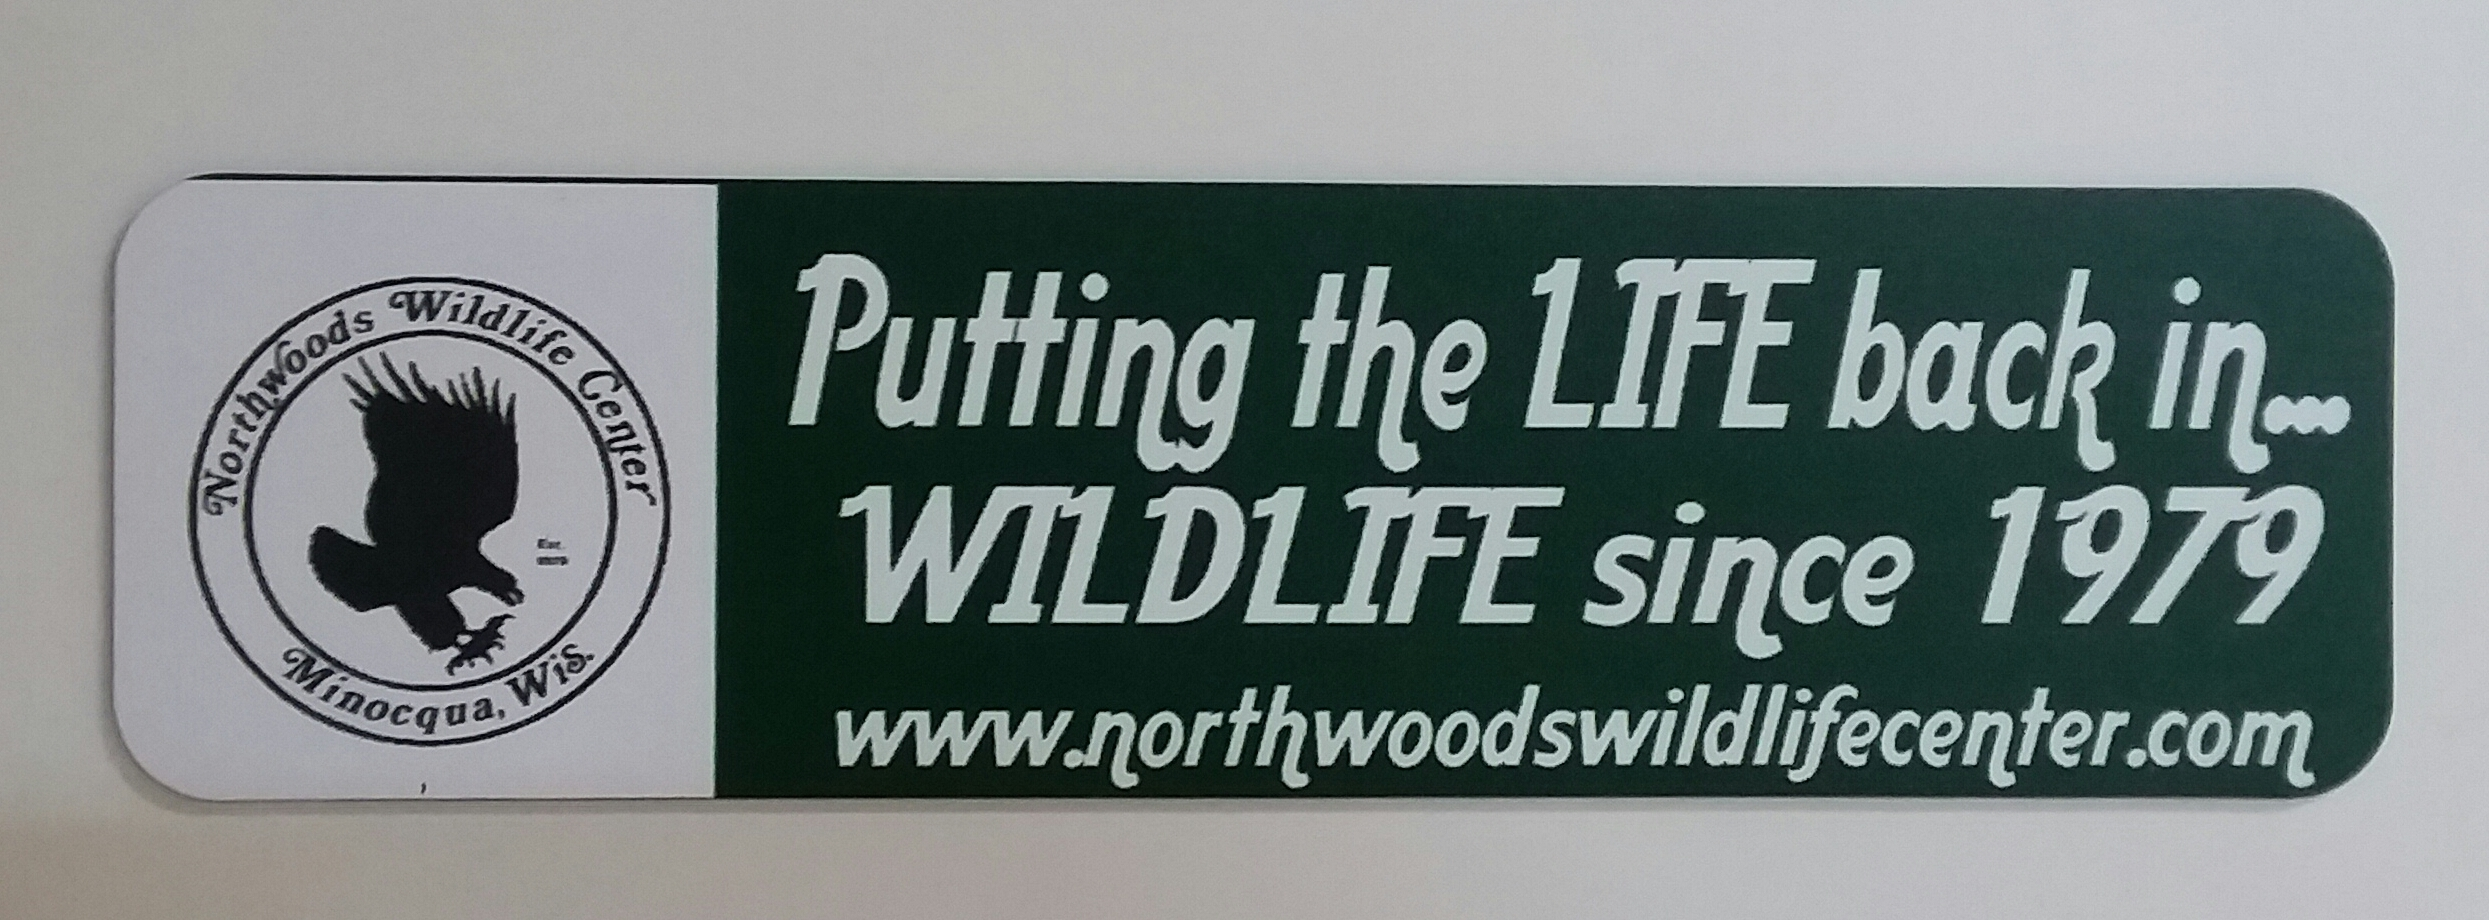 NWC Bumper Magnet $5 + $2 shipping